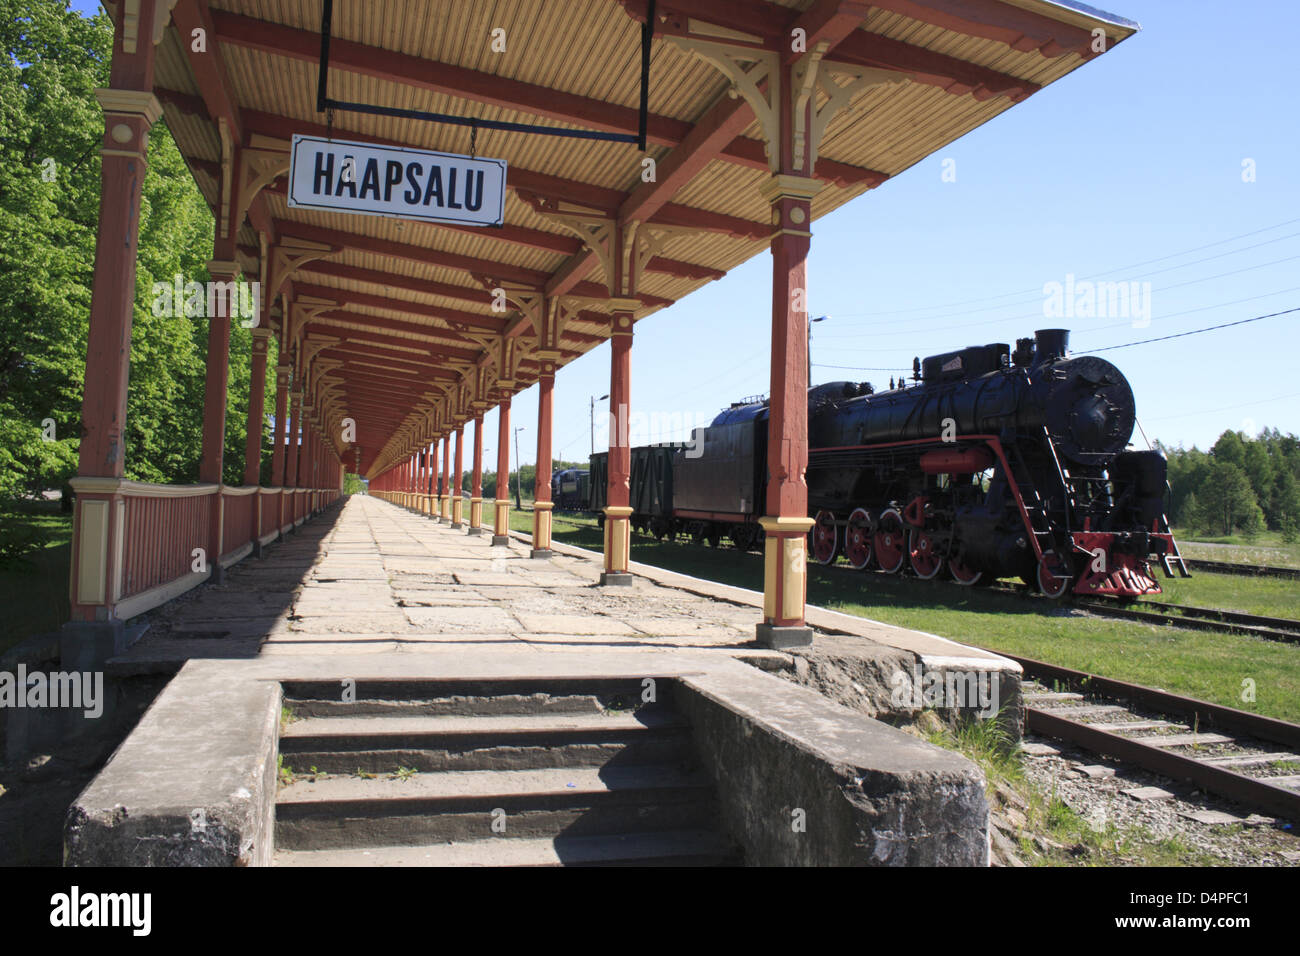 The picture shows a steam engine at the historic train station in Haapsalu, Estonia, June 2009. Photo: Willy Matheisl - Stock Image